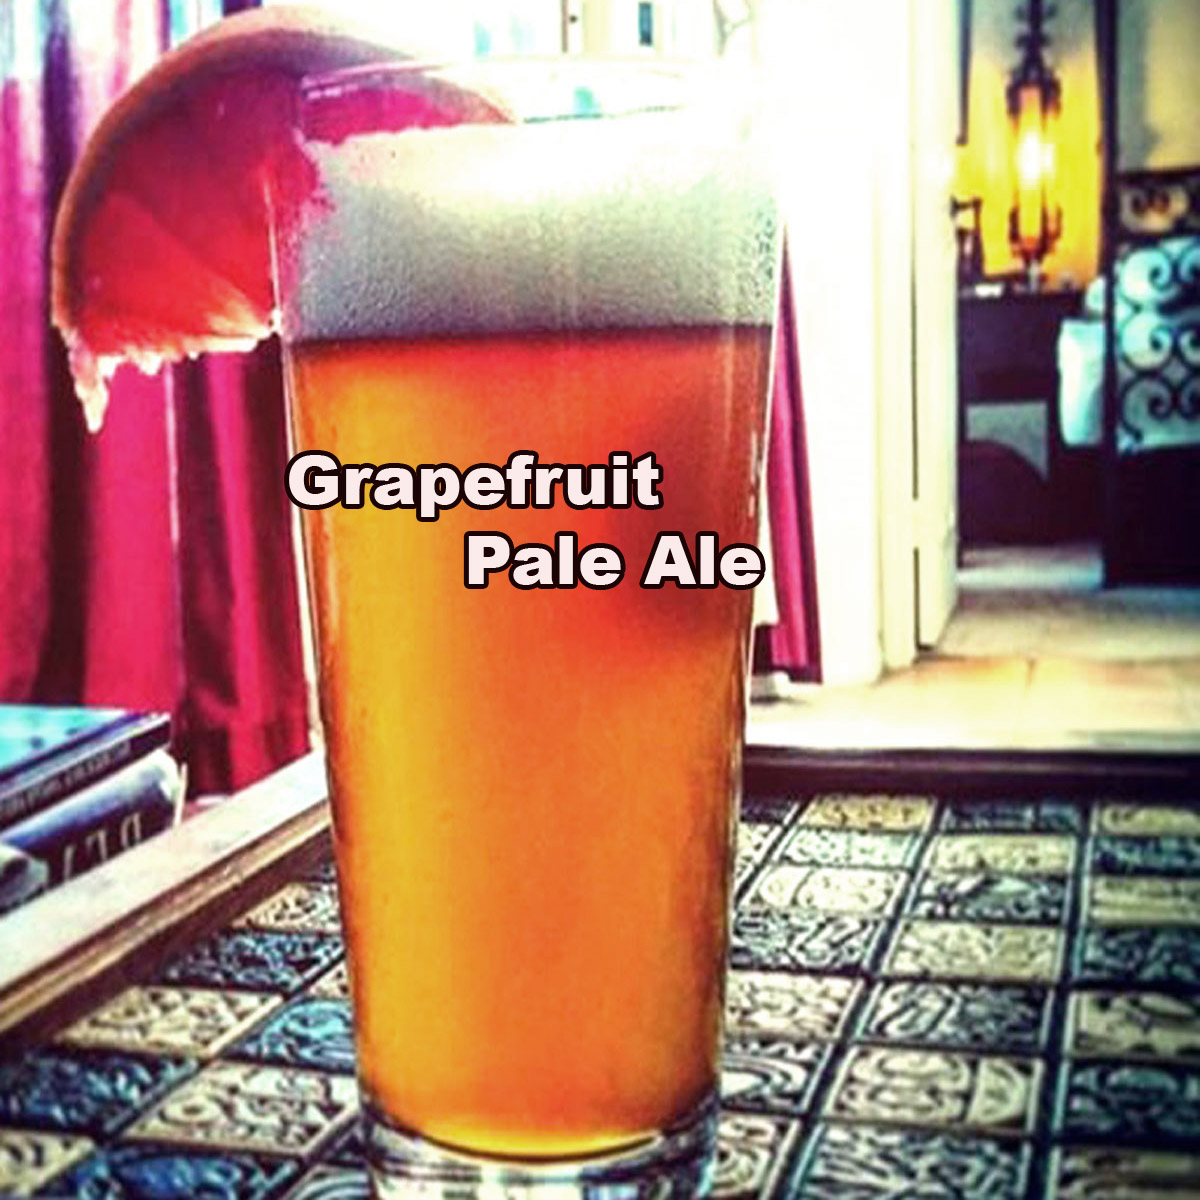 Promo Code For 5 Gallon Homebrewing Grapefruit Pale Ale Beer Kit $24 Coupon Code